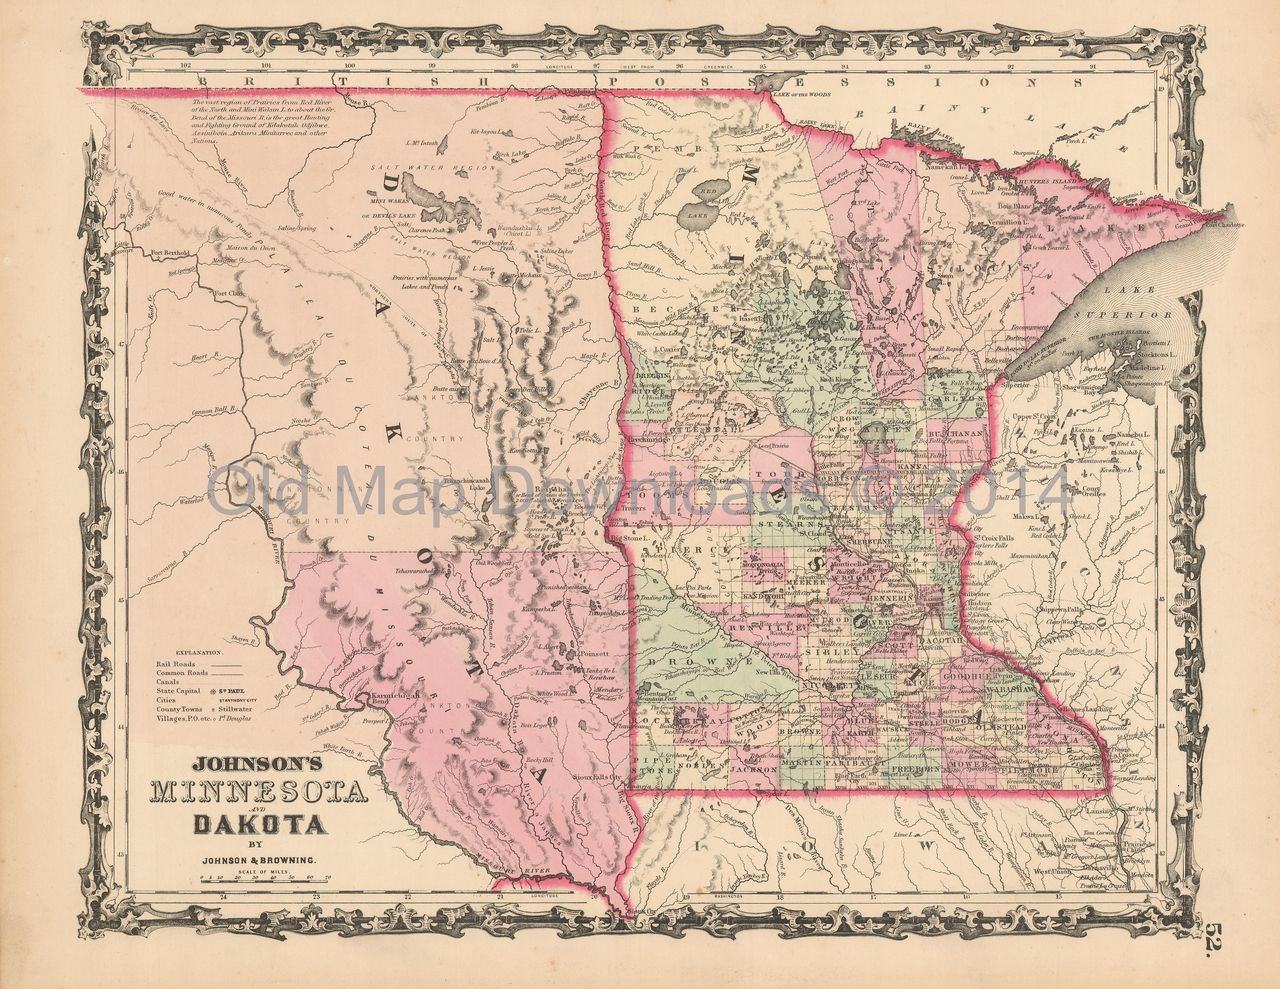 Minnesota Dakota Old Map Johnson 1861 Digital Image Scan Download